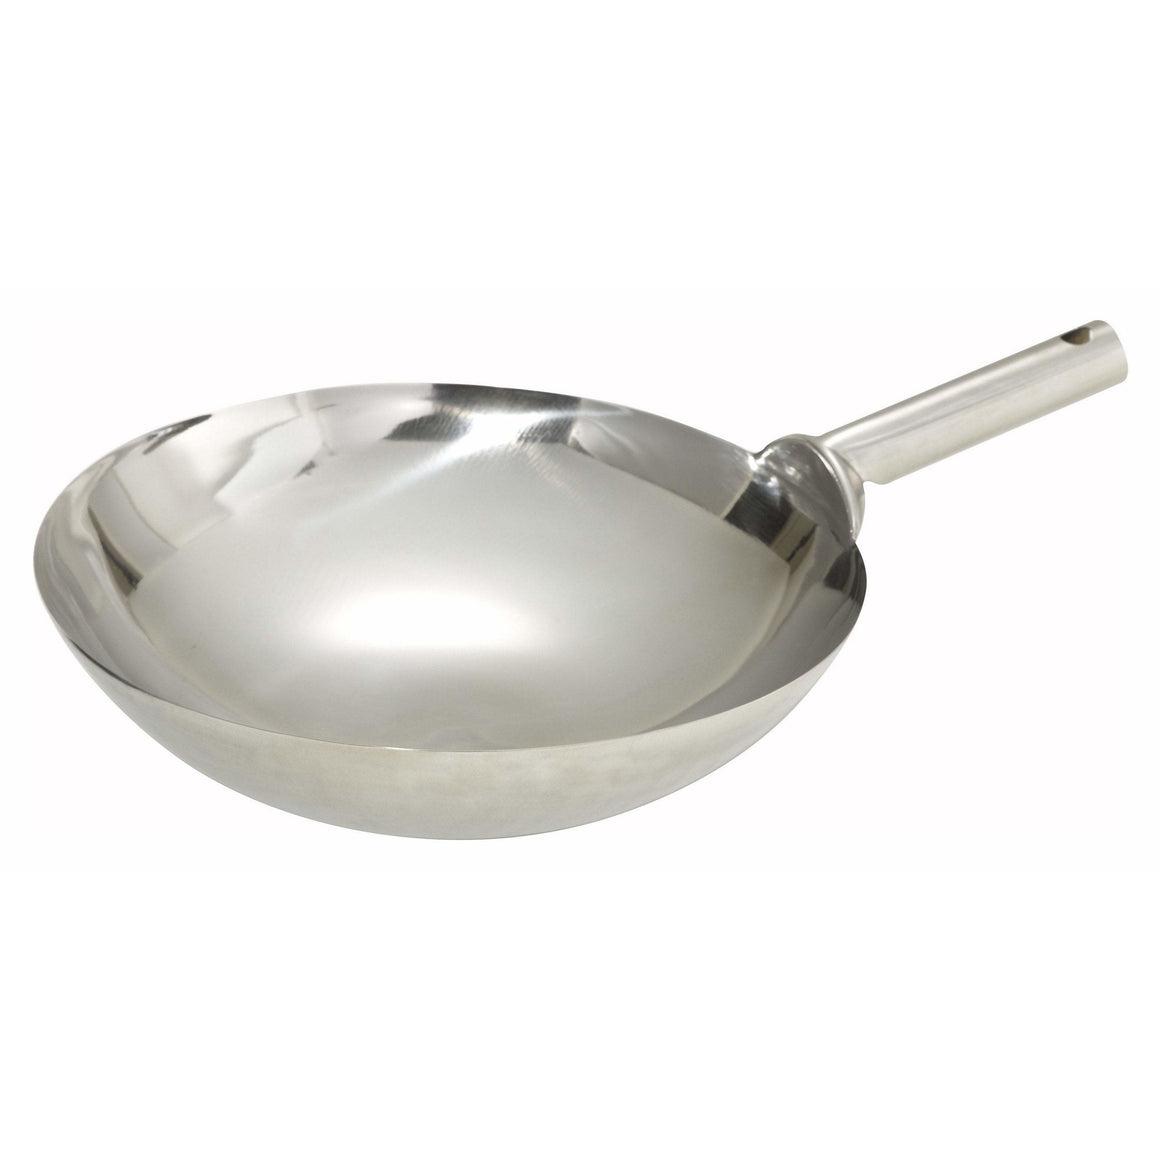 "Winco - WOK-14W - 14"" Stainless Steel Wok, Welded Joint - Cookware"